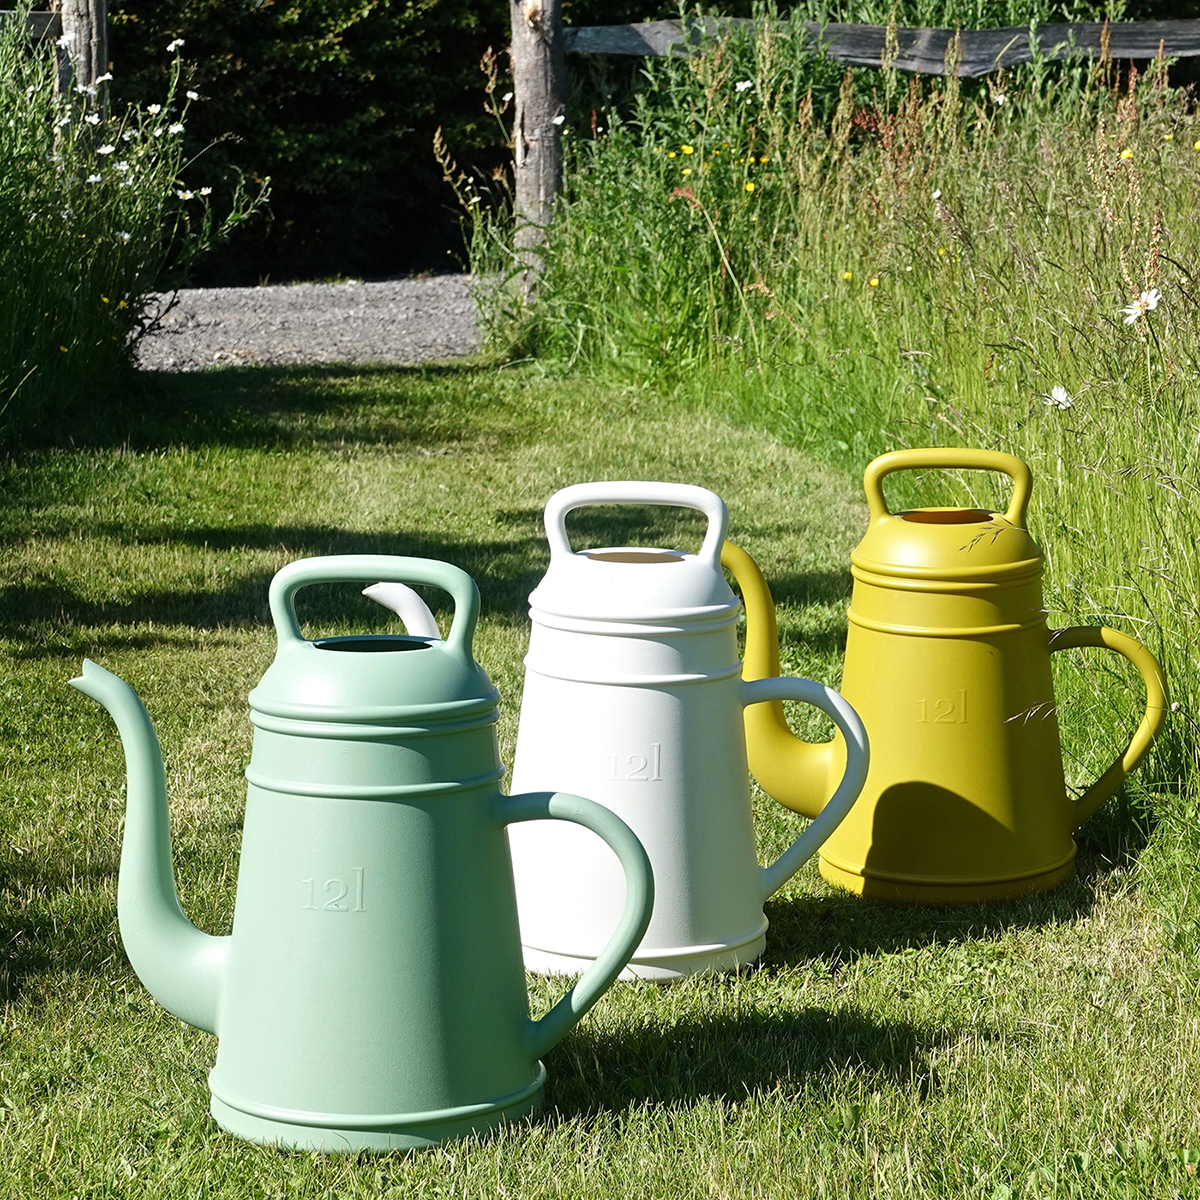 Large Coffee Pot Watering Can